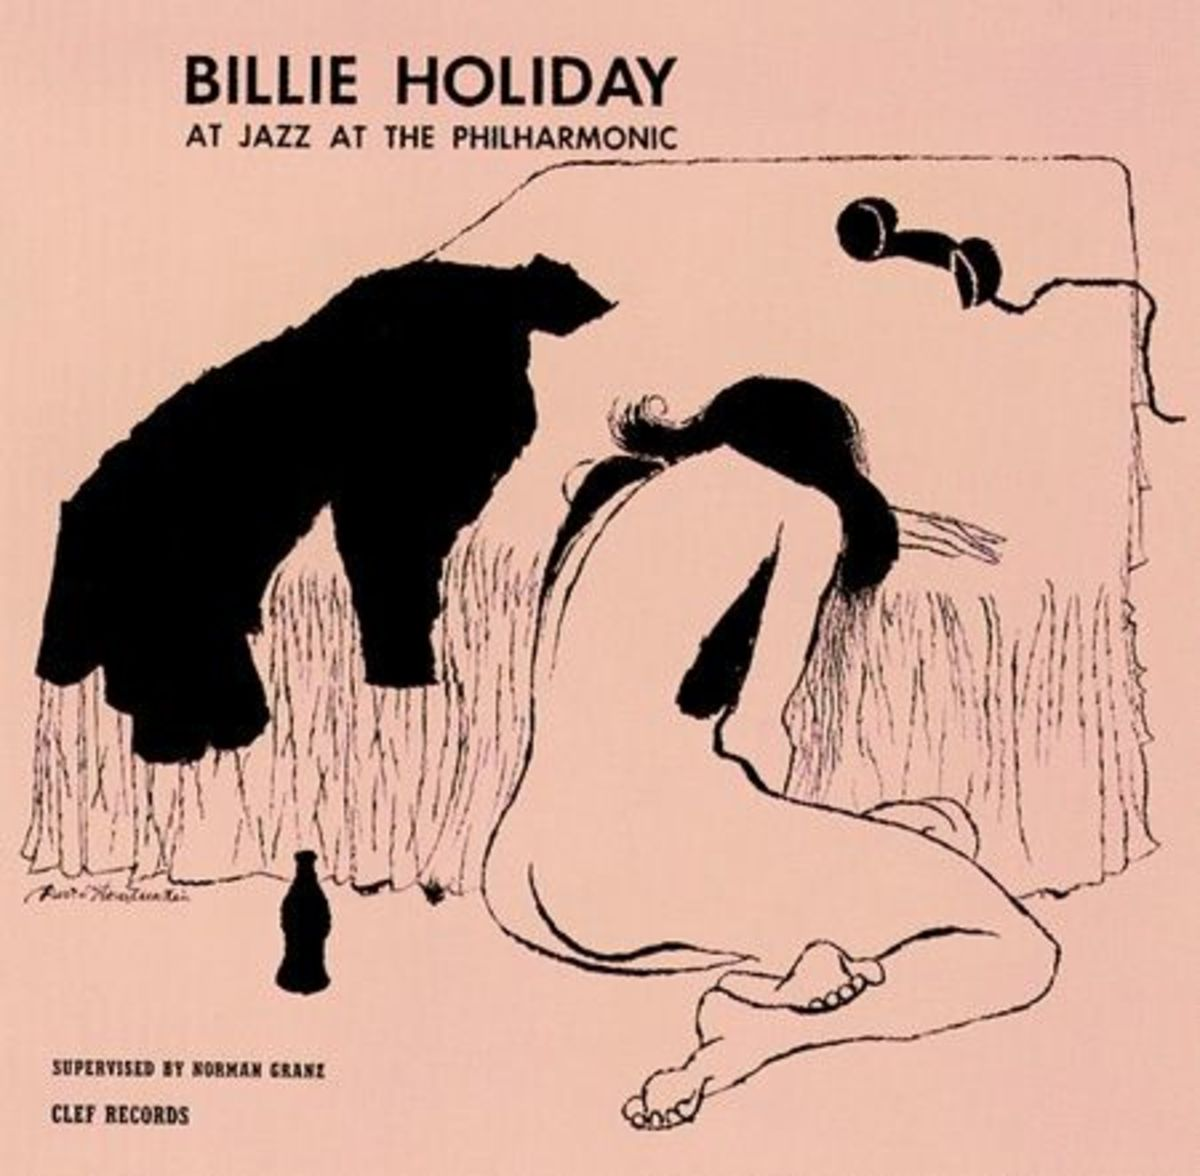 """Billie Holiday """"Jazz at the Philharmonic"""" Clef Records 169 10"""" LP Vinyl Record (1954) Album Cover Art by David Stone Martin"""